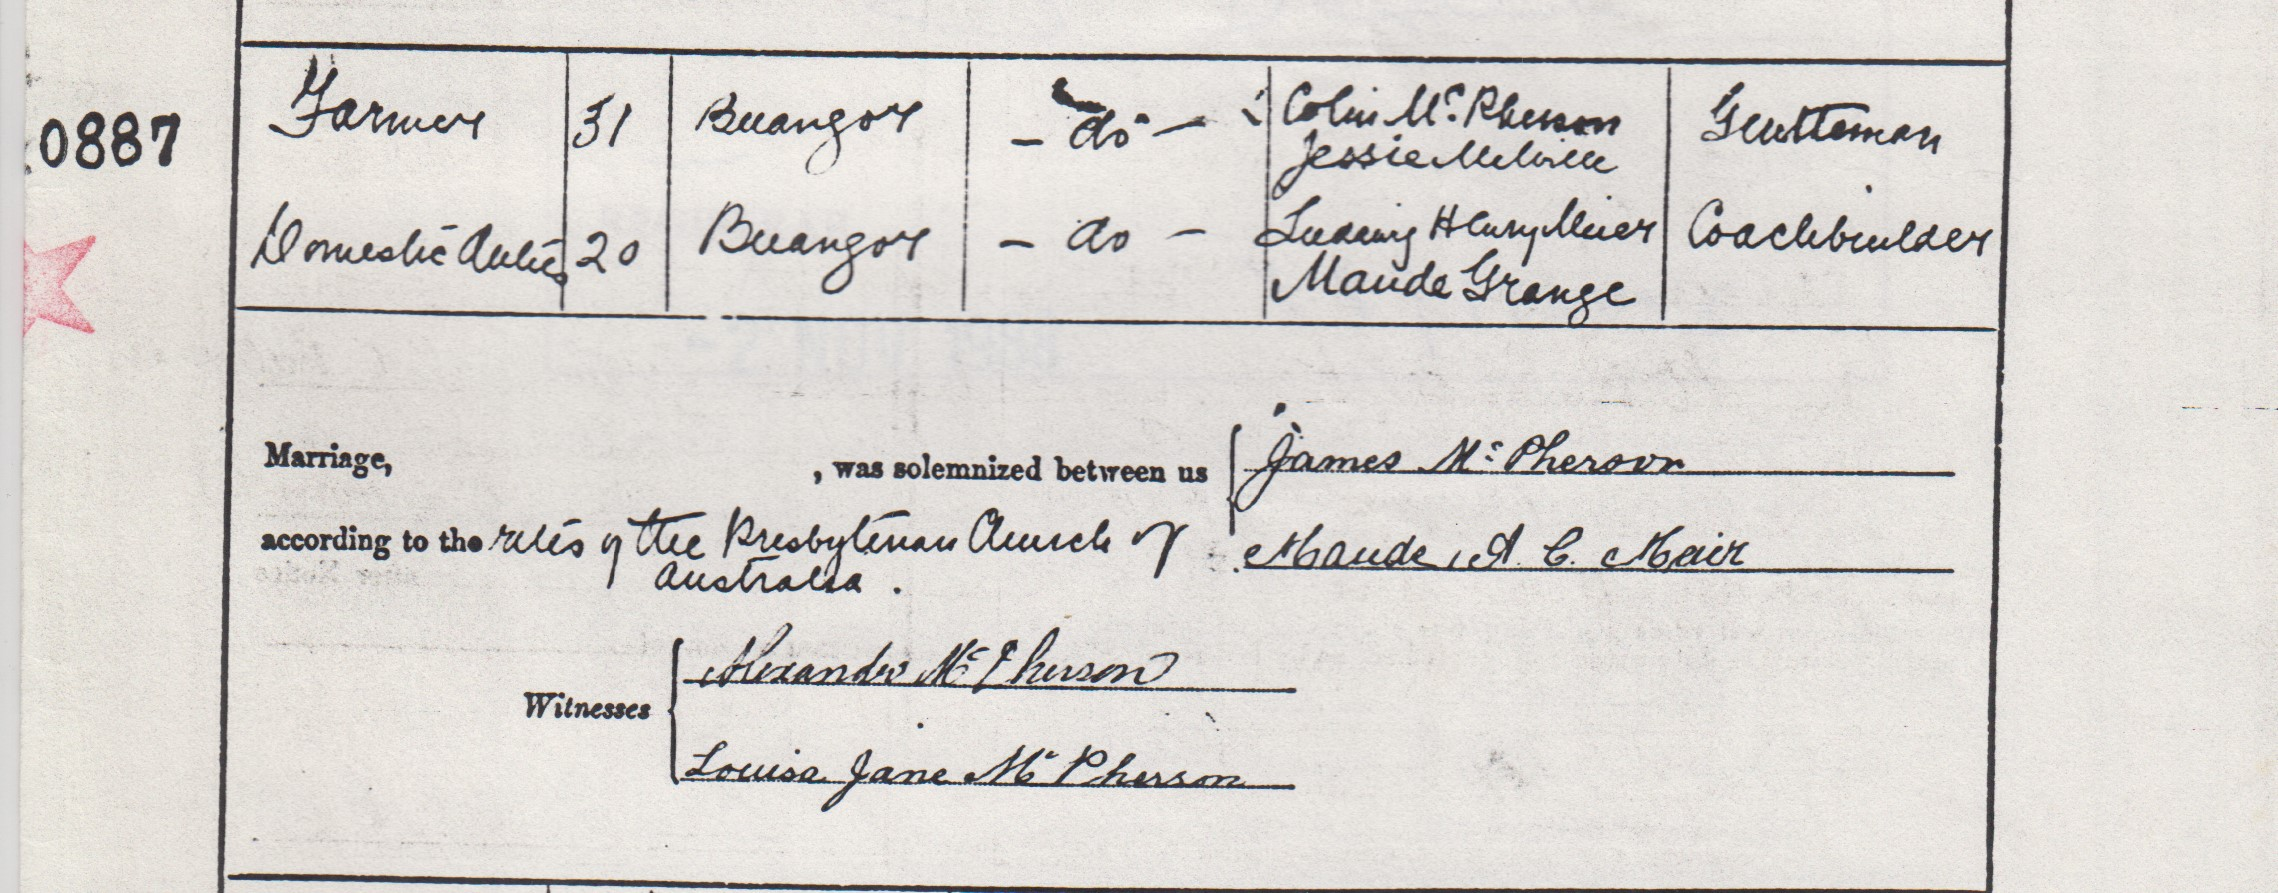 James McPherson marriage certificate part 2